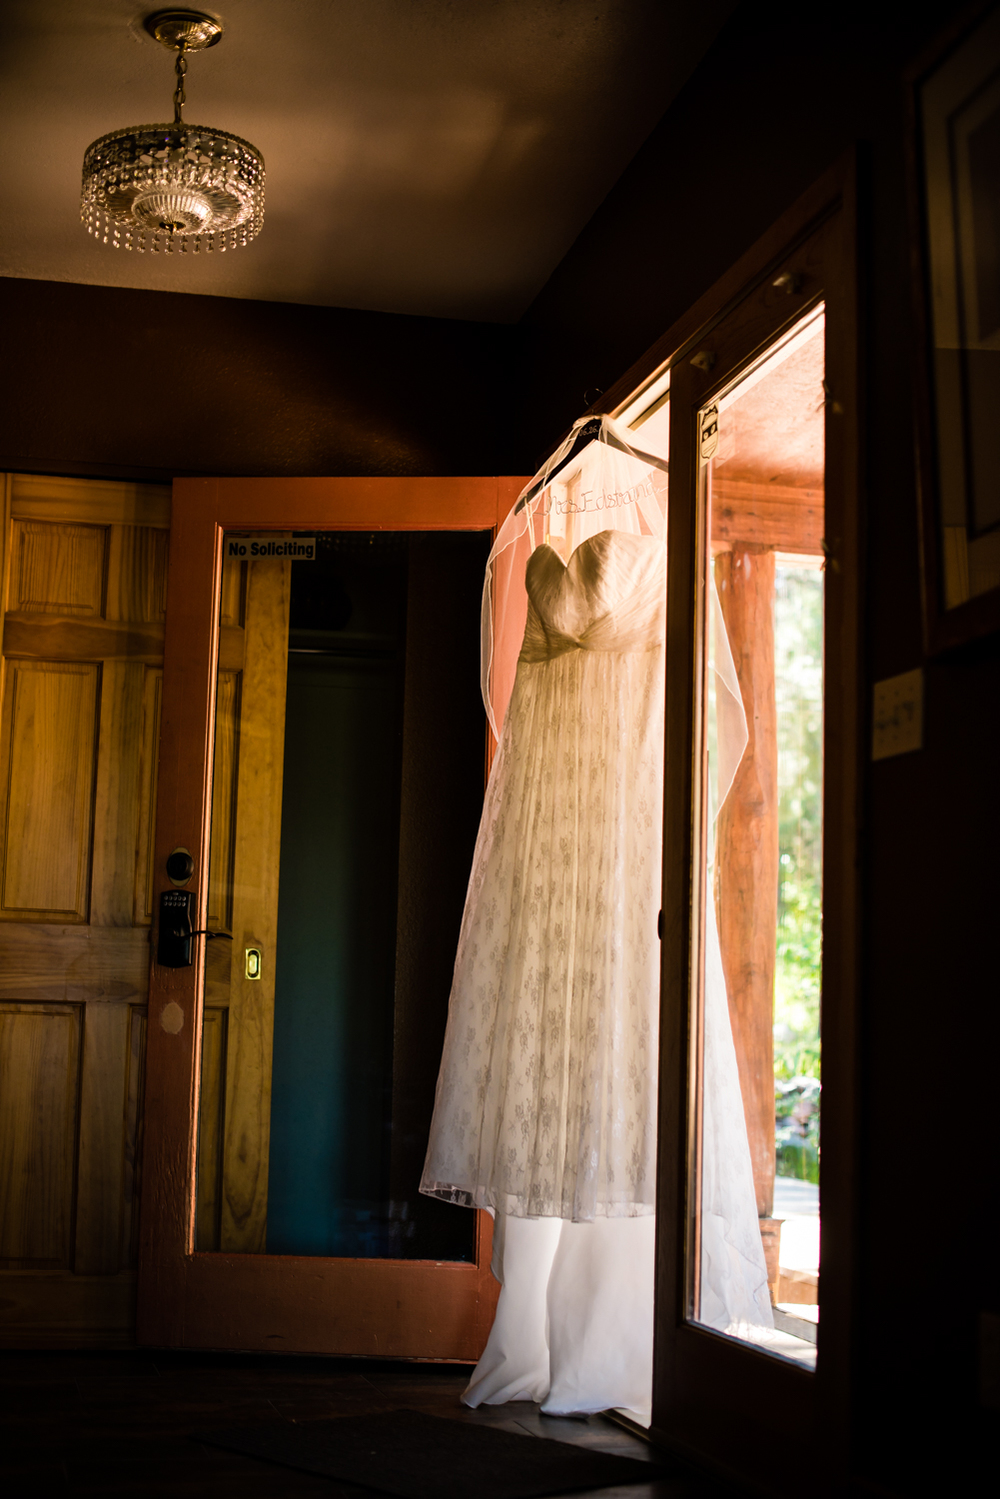 Wedding dress hanging in doorway for  a Deer Creek Valley Ranch Wedding. Photographed by JMGant Photography.